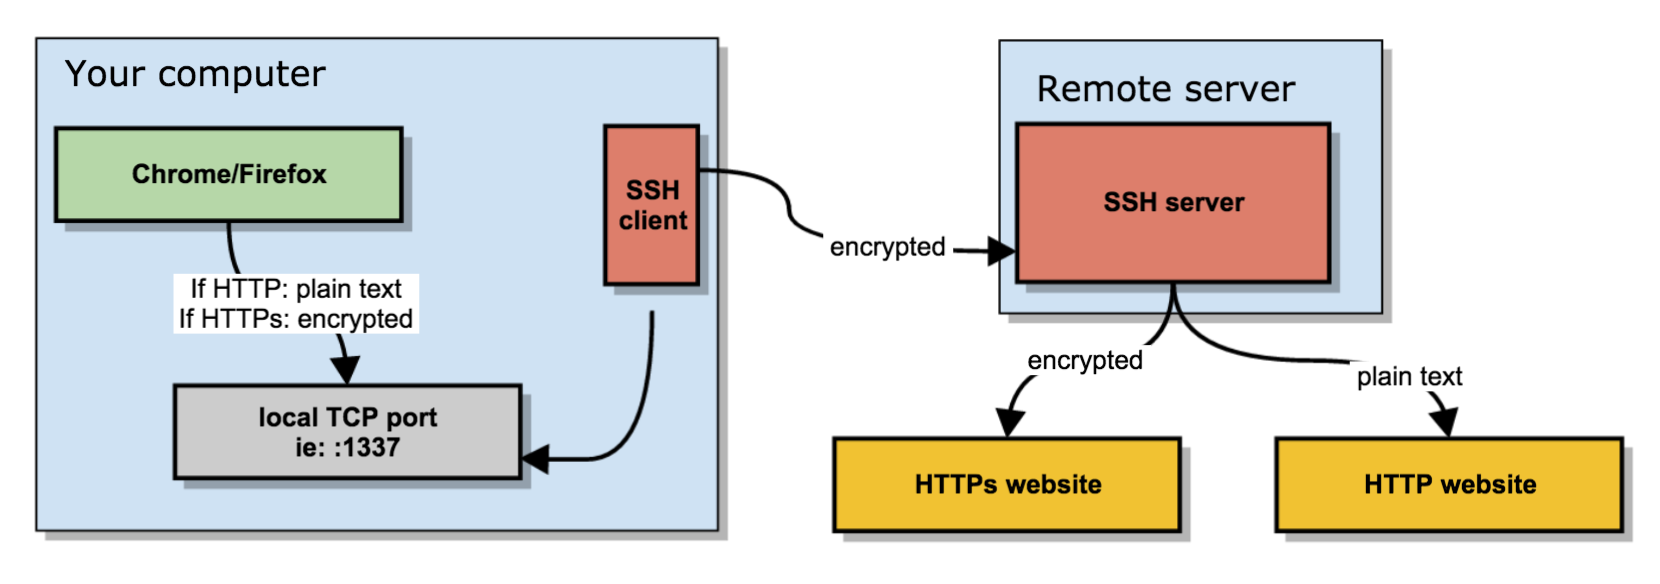 Create a SOCKS proxy on a Linux server with SSH to bypass content filters